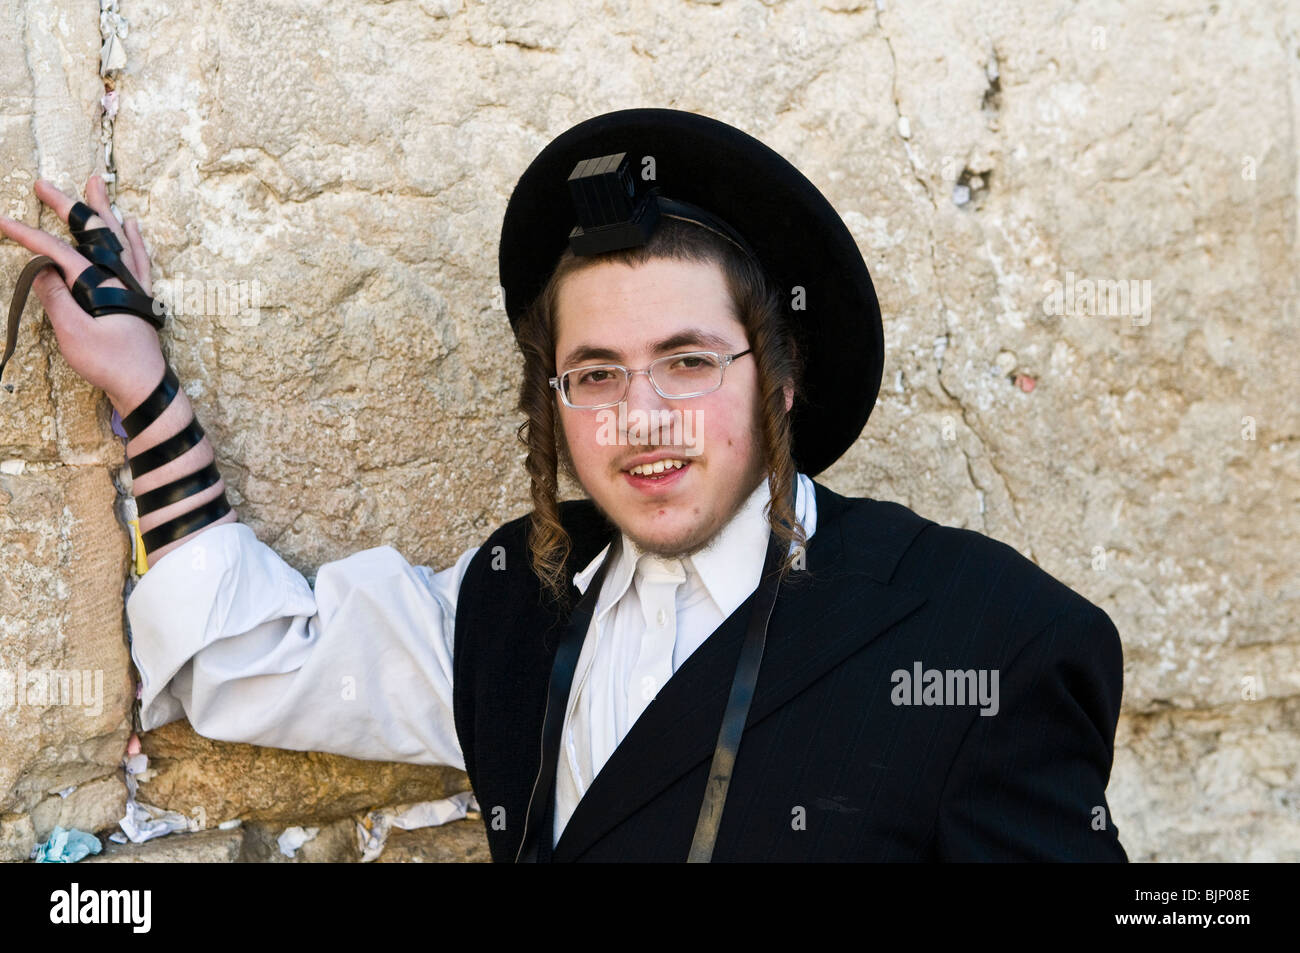 Praying by the wailing wall. - Stock Image